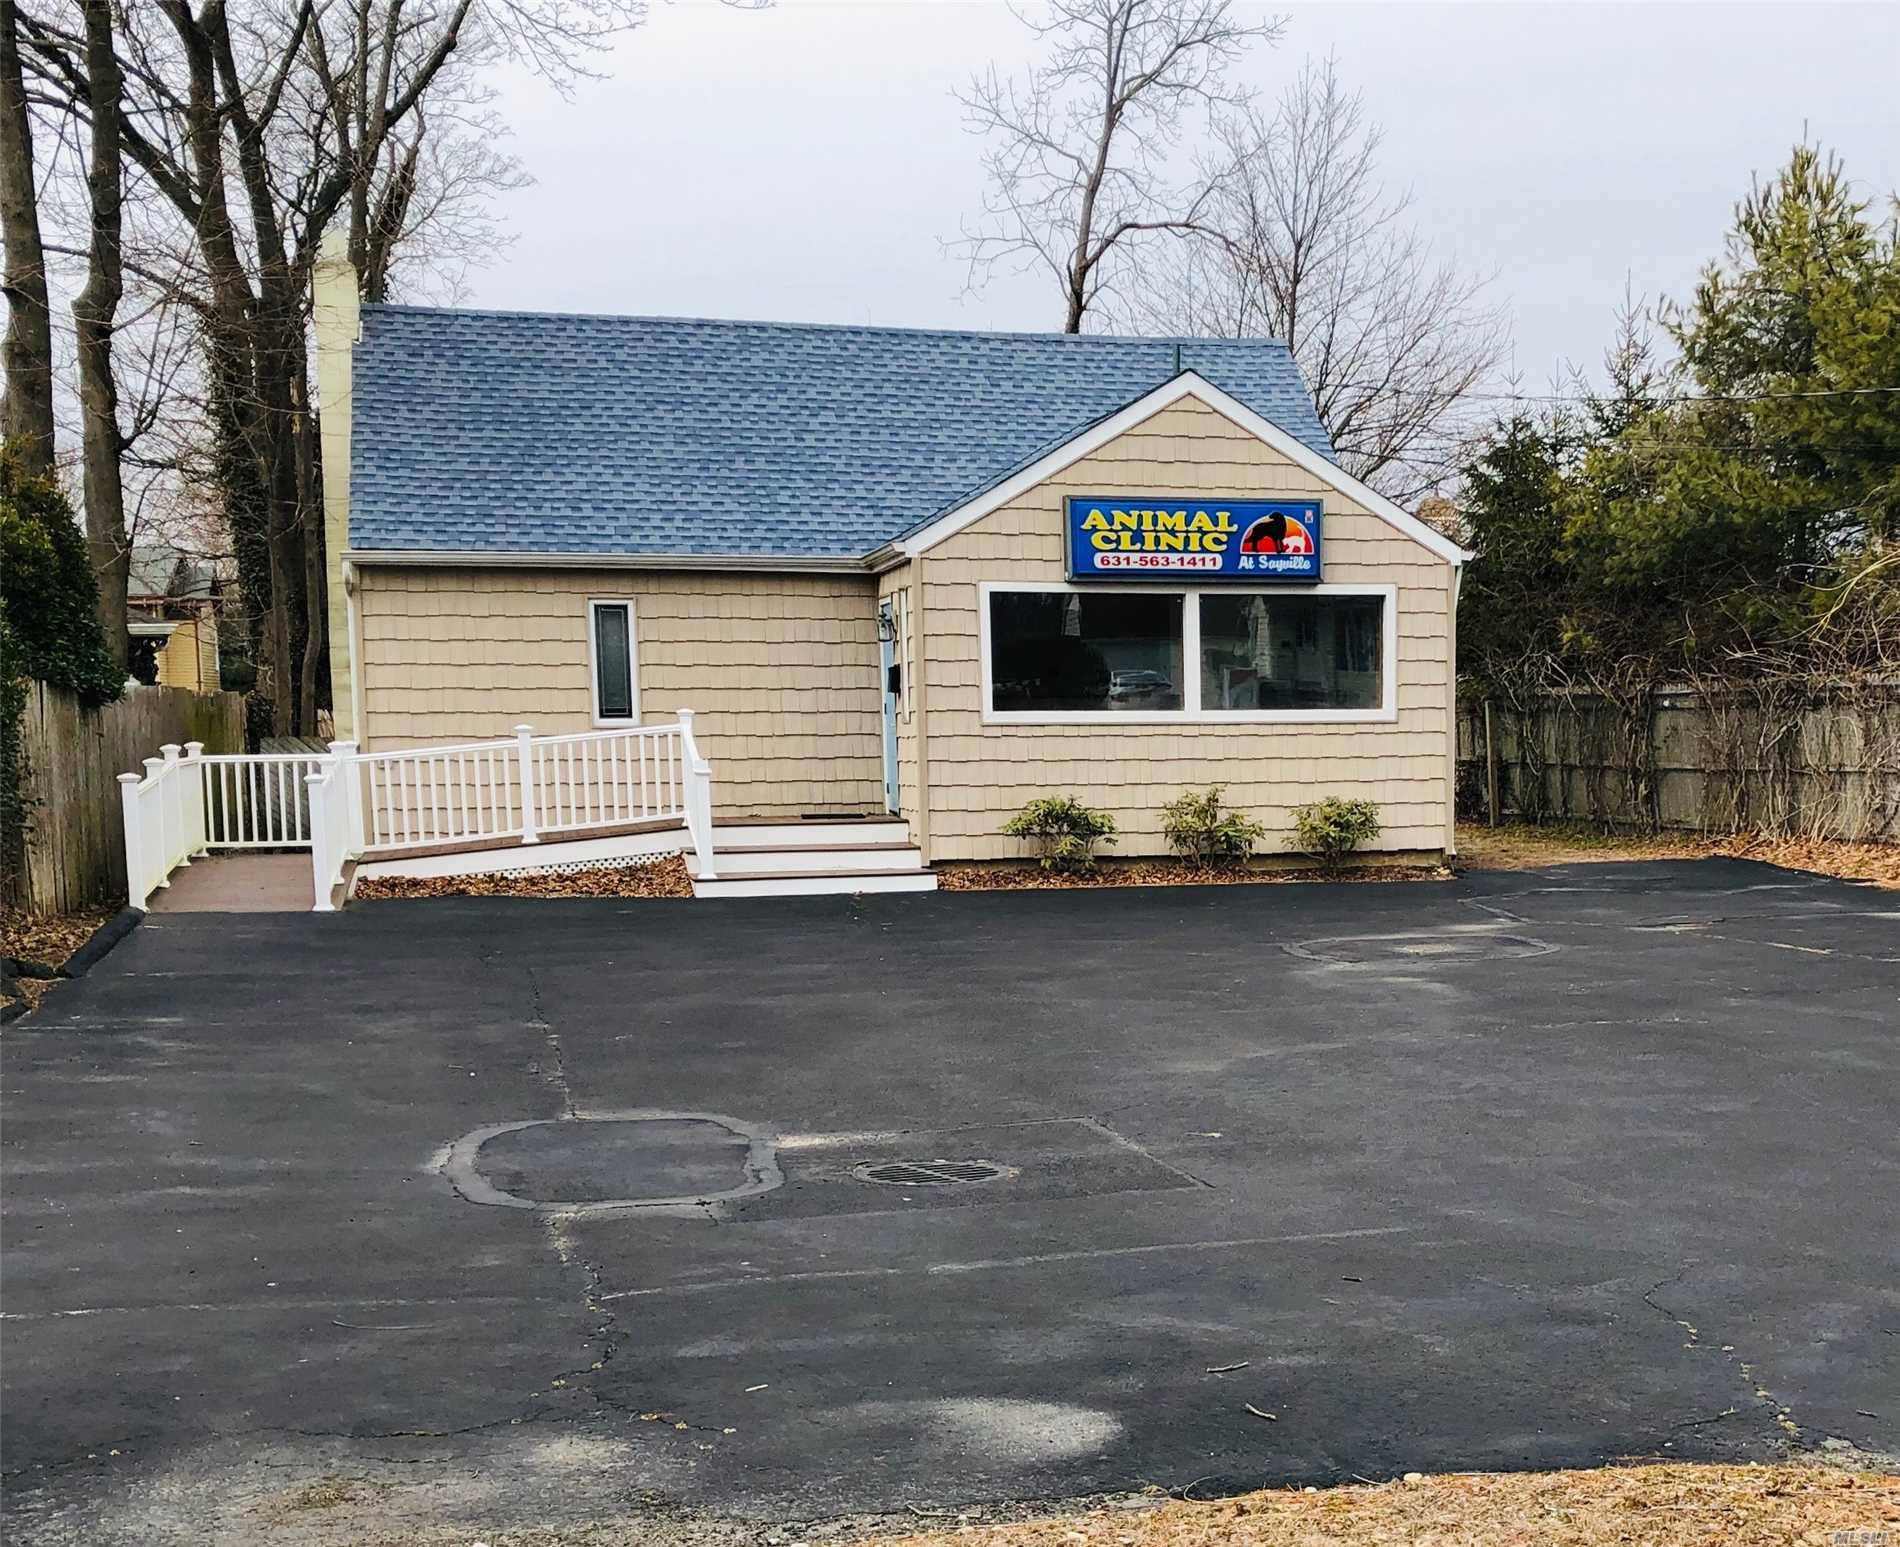 Food Service Possible. Permit Being Obtained. Three Offices, Bathroom, Attic Storage, Newer Roof. Opportunity To Buy See Mls #3100274 . Possible Build To Suit. Possible Owner Financing.